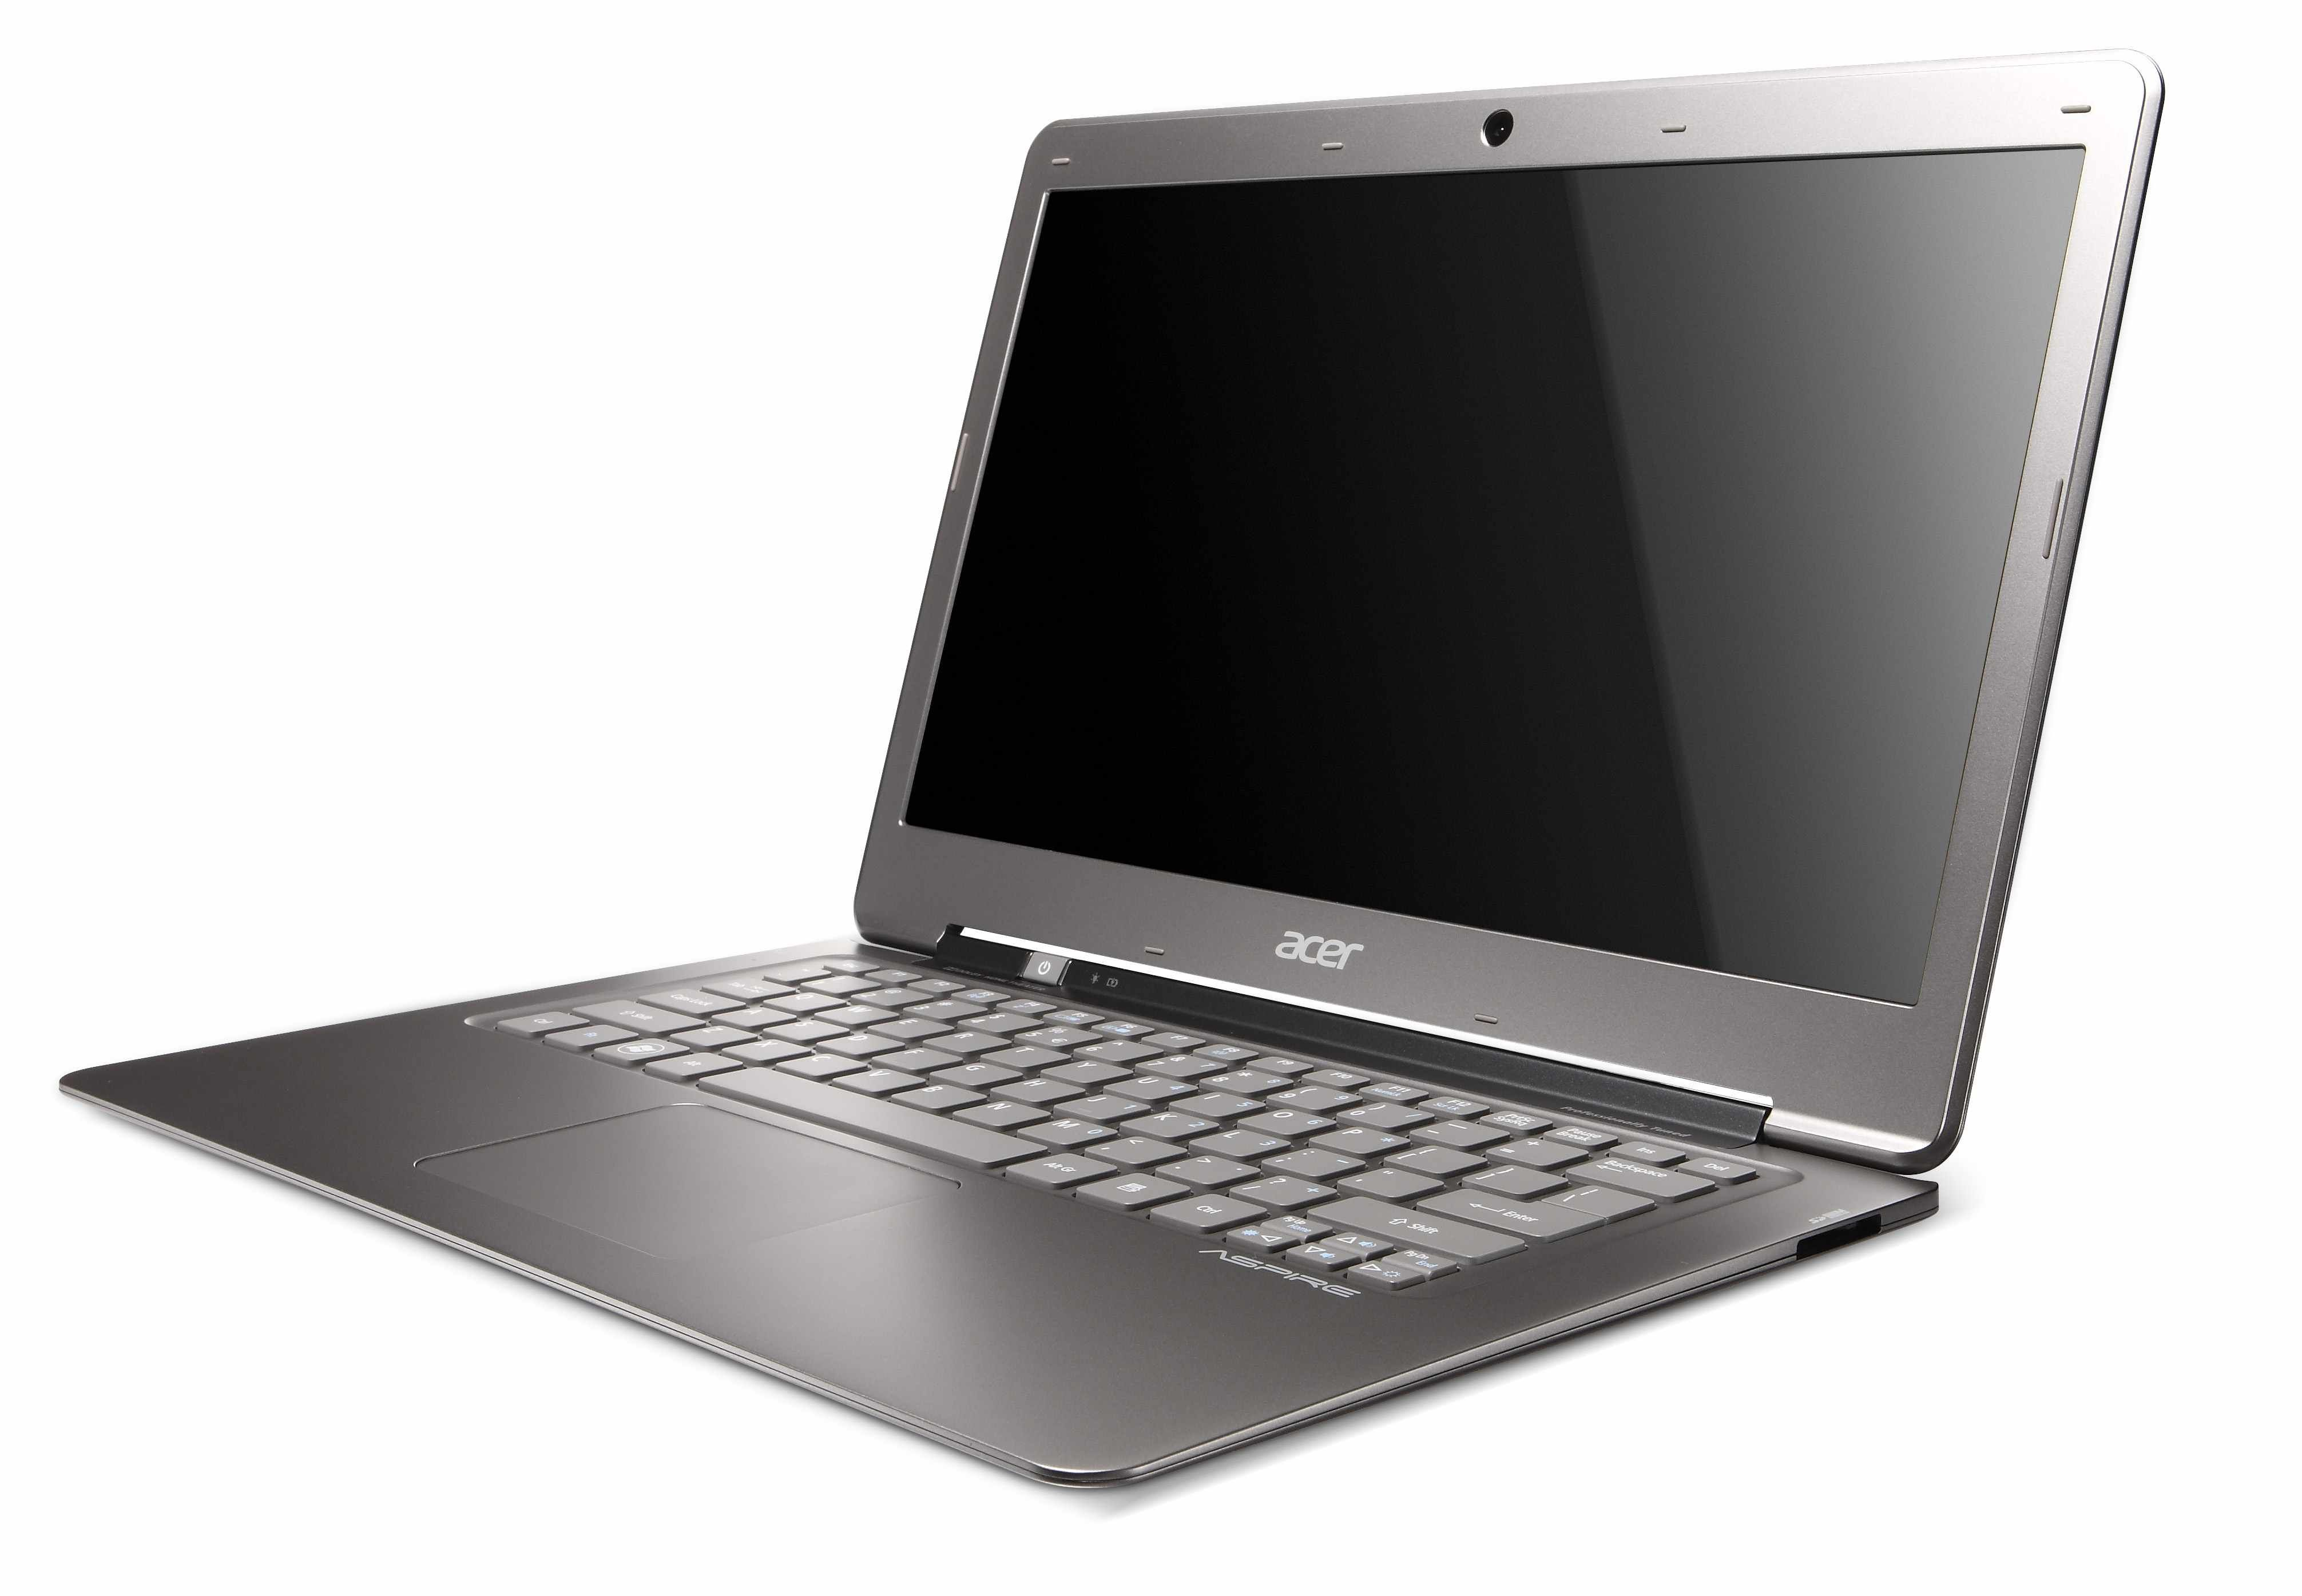 Acer Aspire S3 under review... let me know if you have